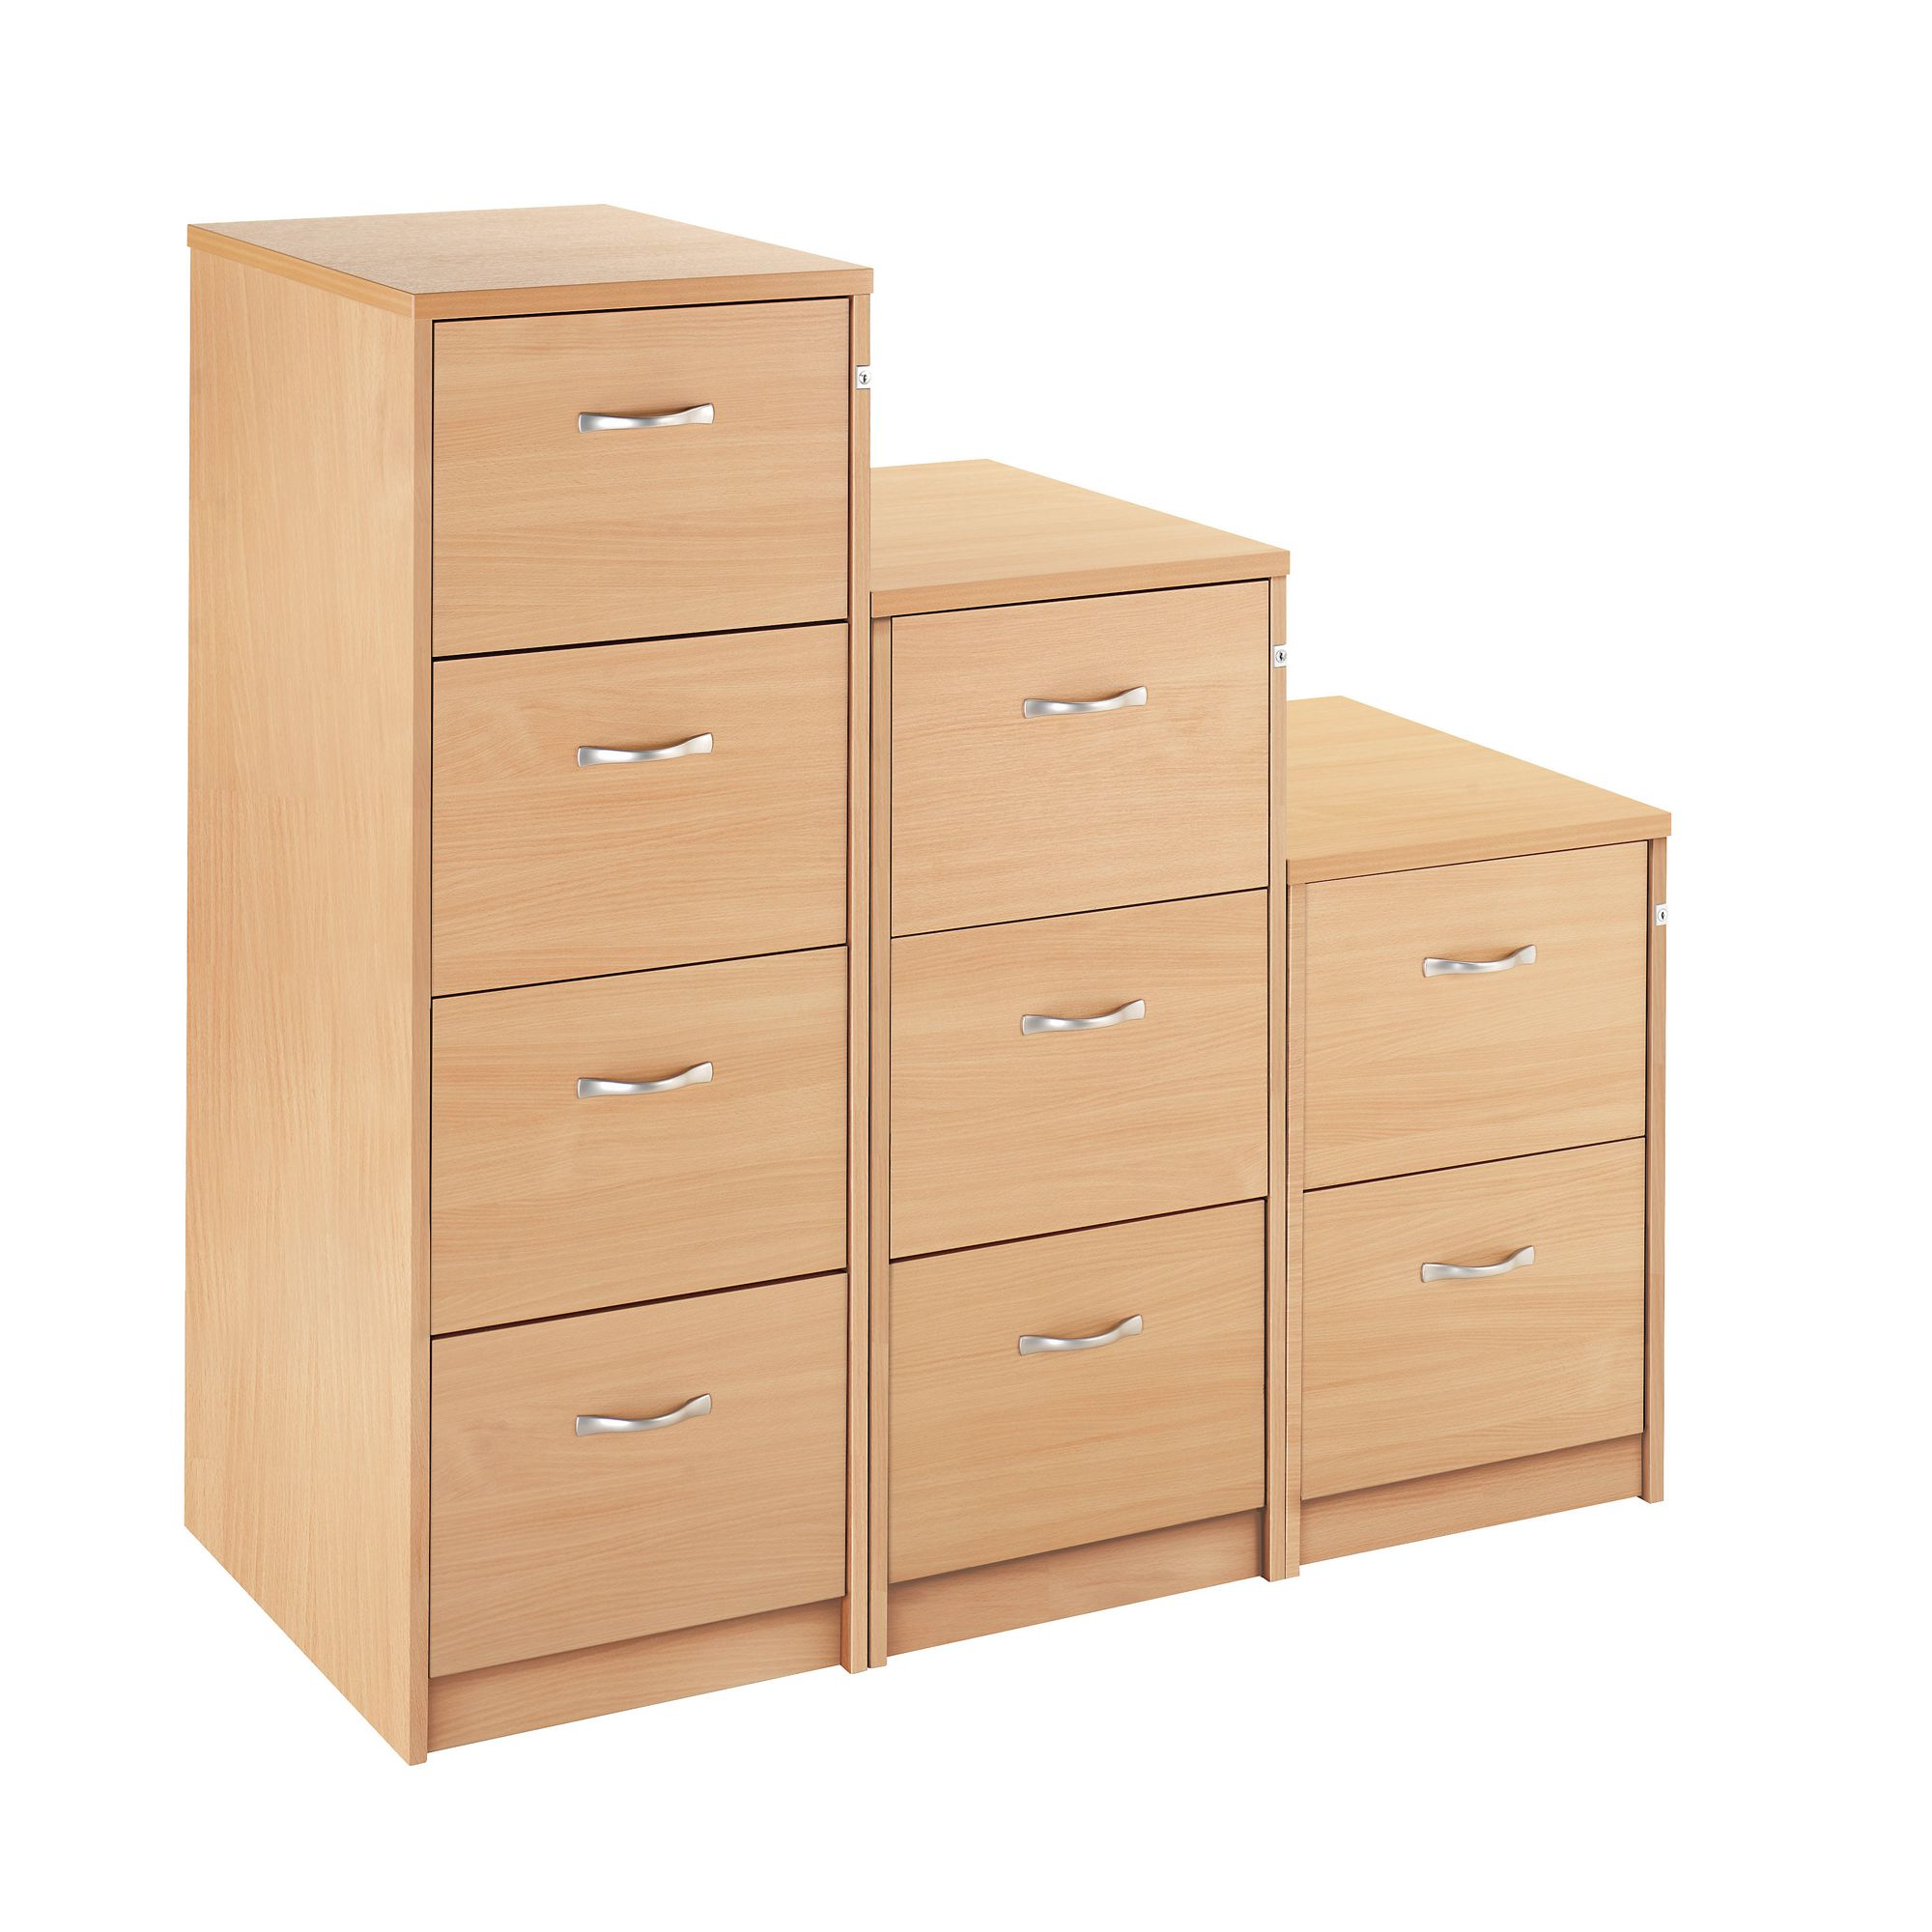 Picture of: Classmates Wooden Filing Cabinet 4 Drawer He48838023 Findel Education